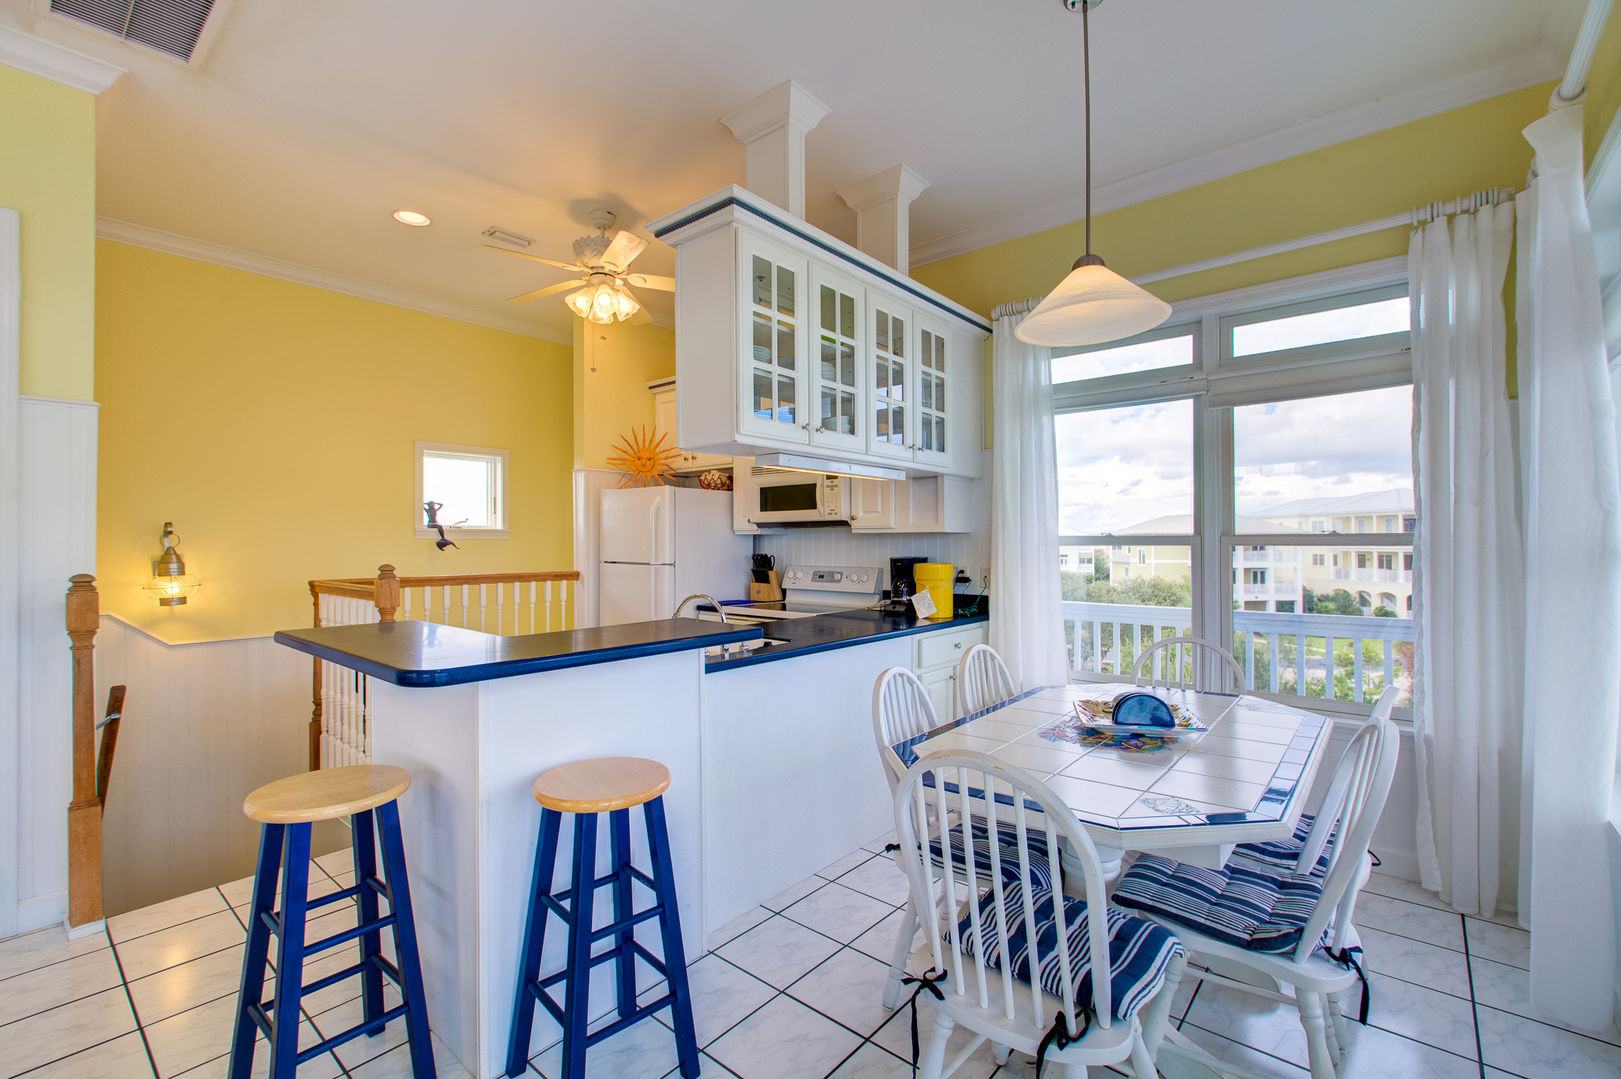 Kitchen with Breakfast Bar, Stools, Dining Table, Chairs, and Windows.